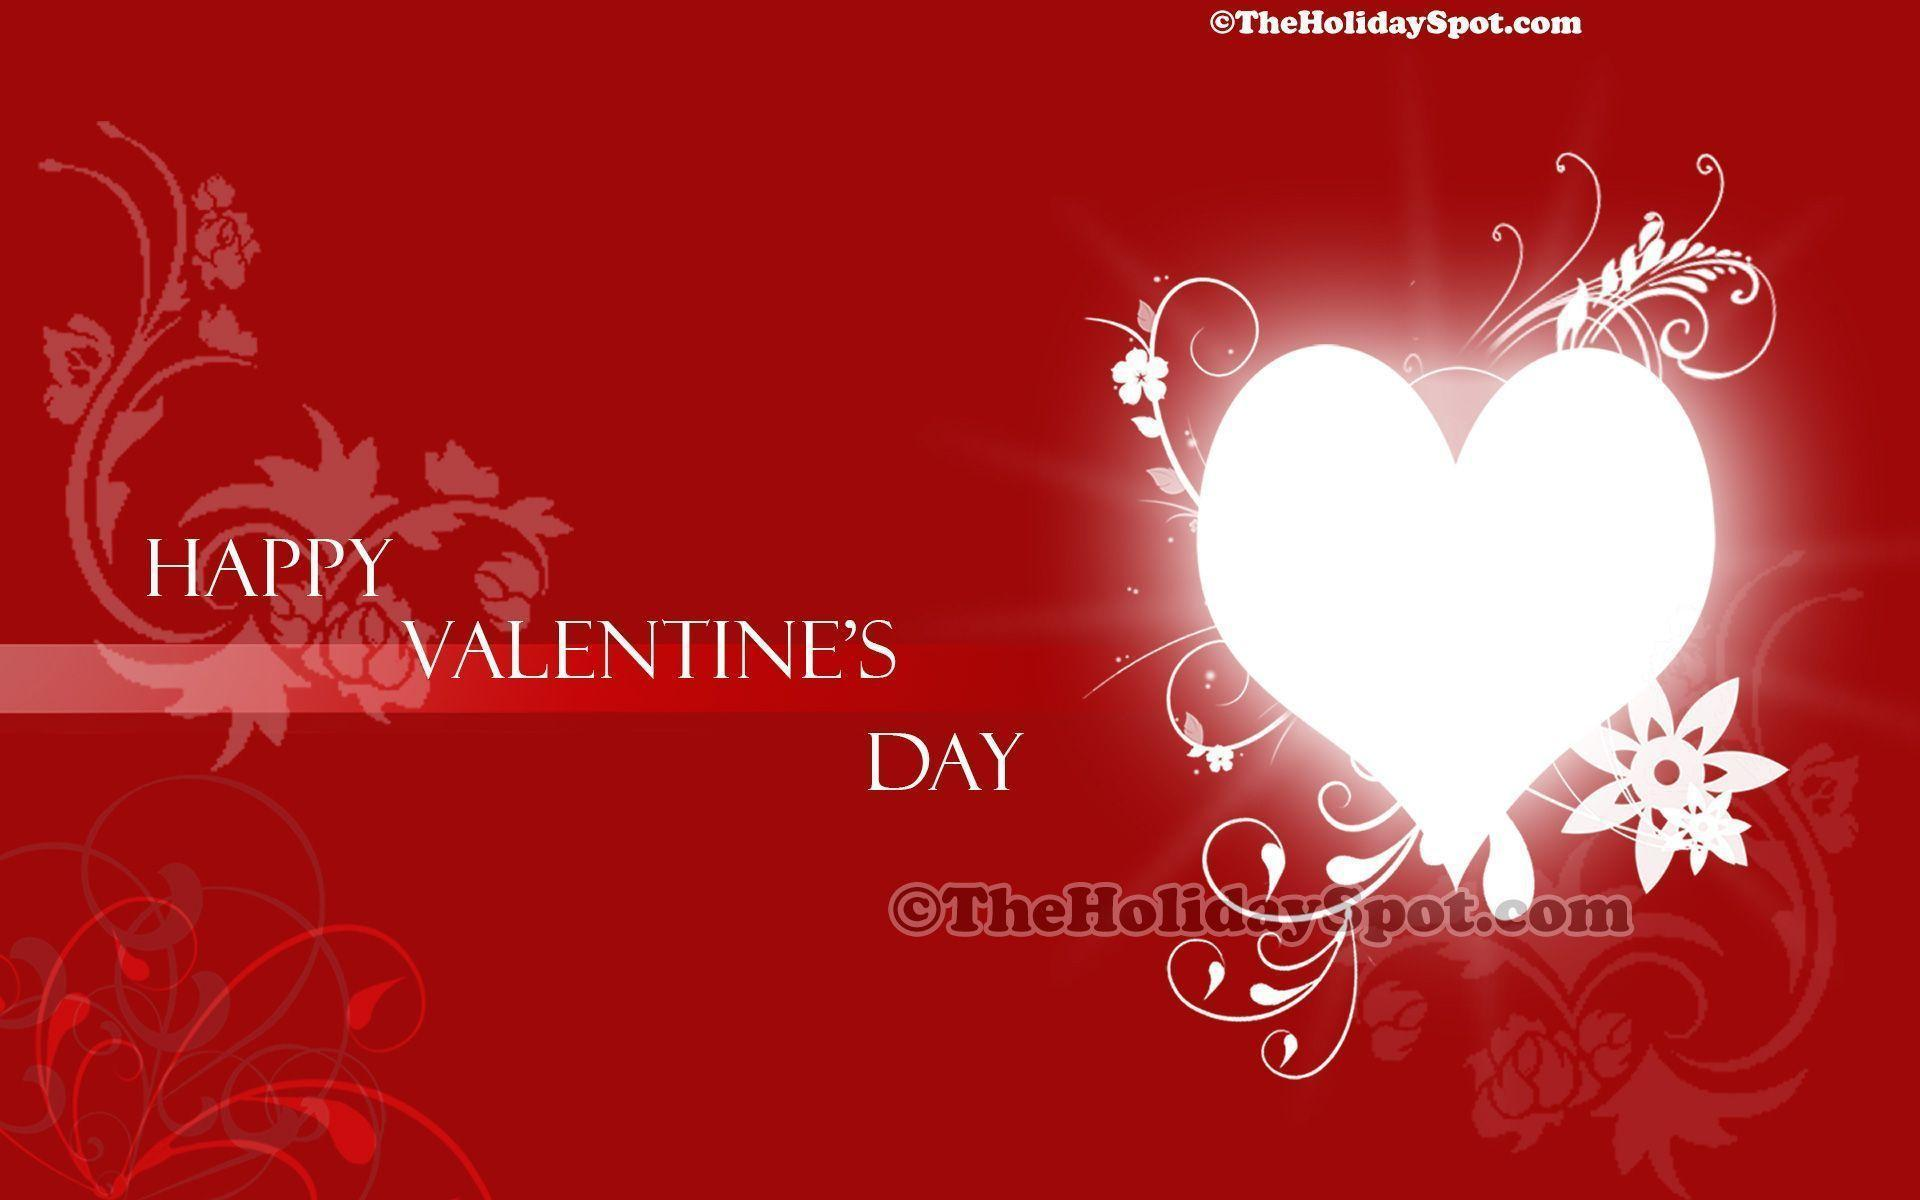 Download} Full HD Valentine&Day Wallpapers for Mobile